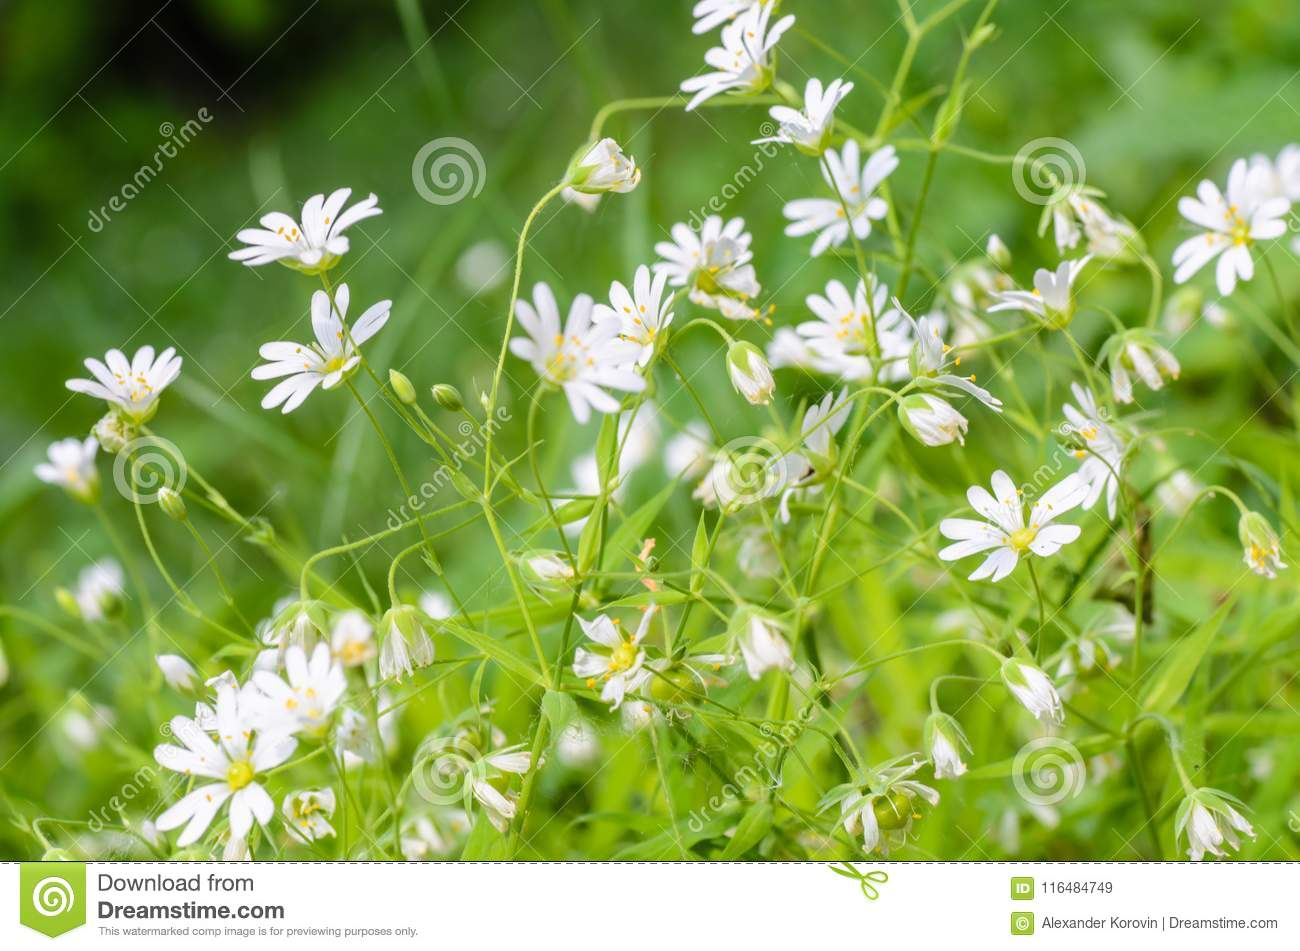 Forest Plant Stellate Flowers In Spring With White Flowers Stock